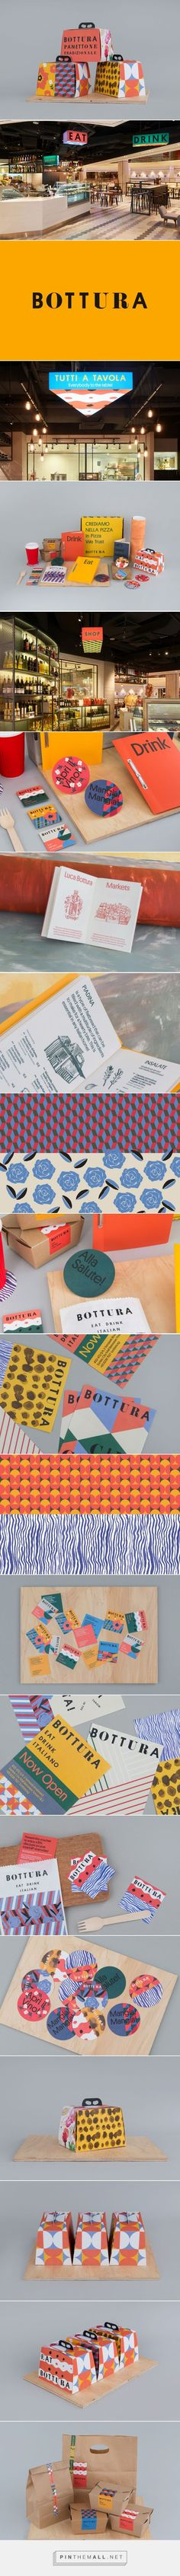 New Brand Identity for Bottura by Foreign Policy — BP&O - created via https://pinthemall.net